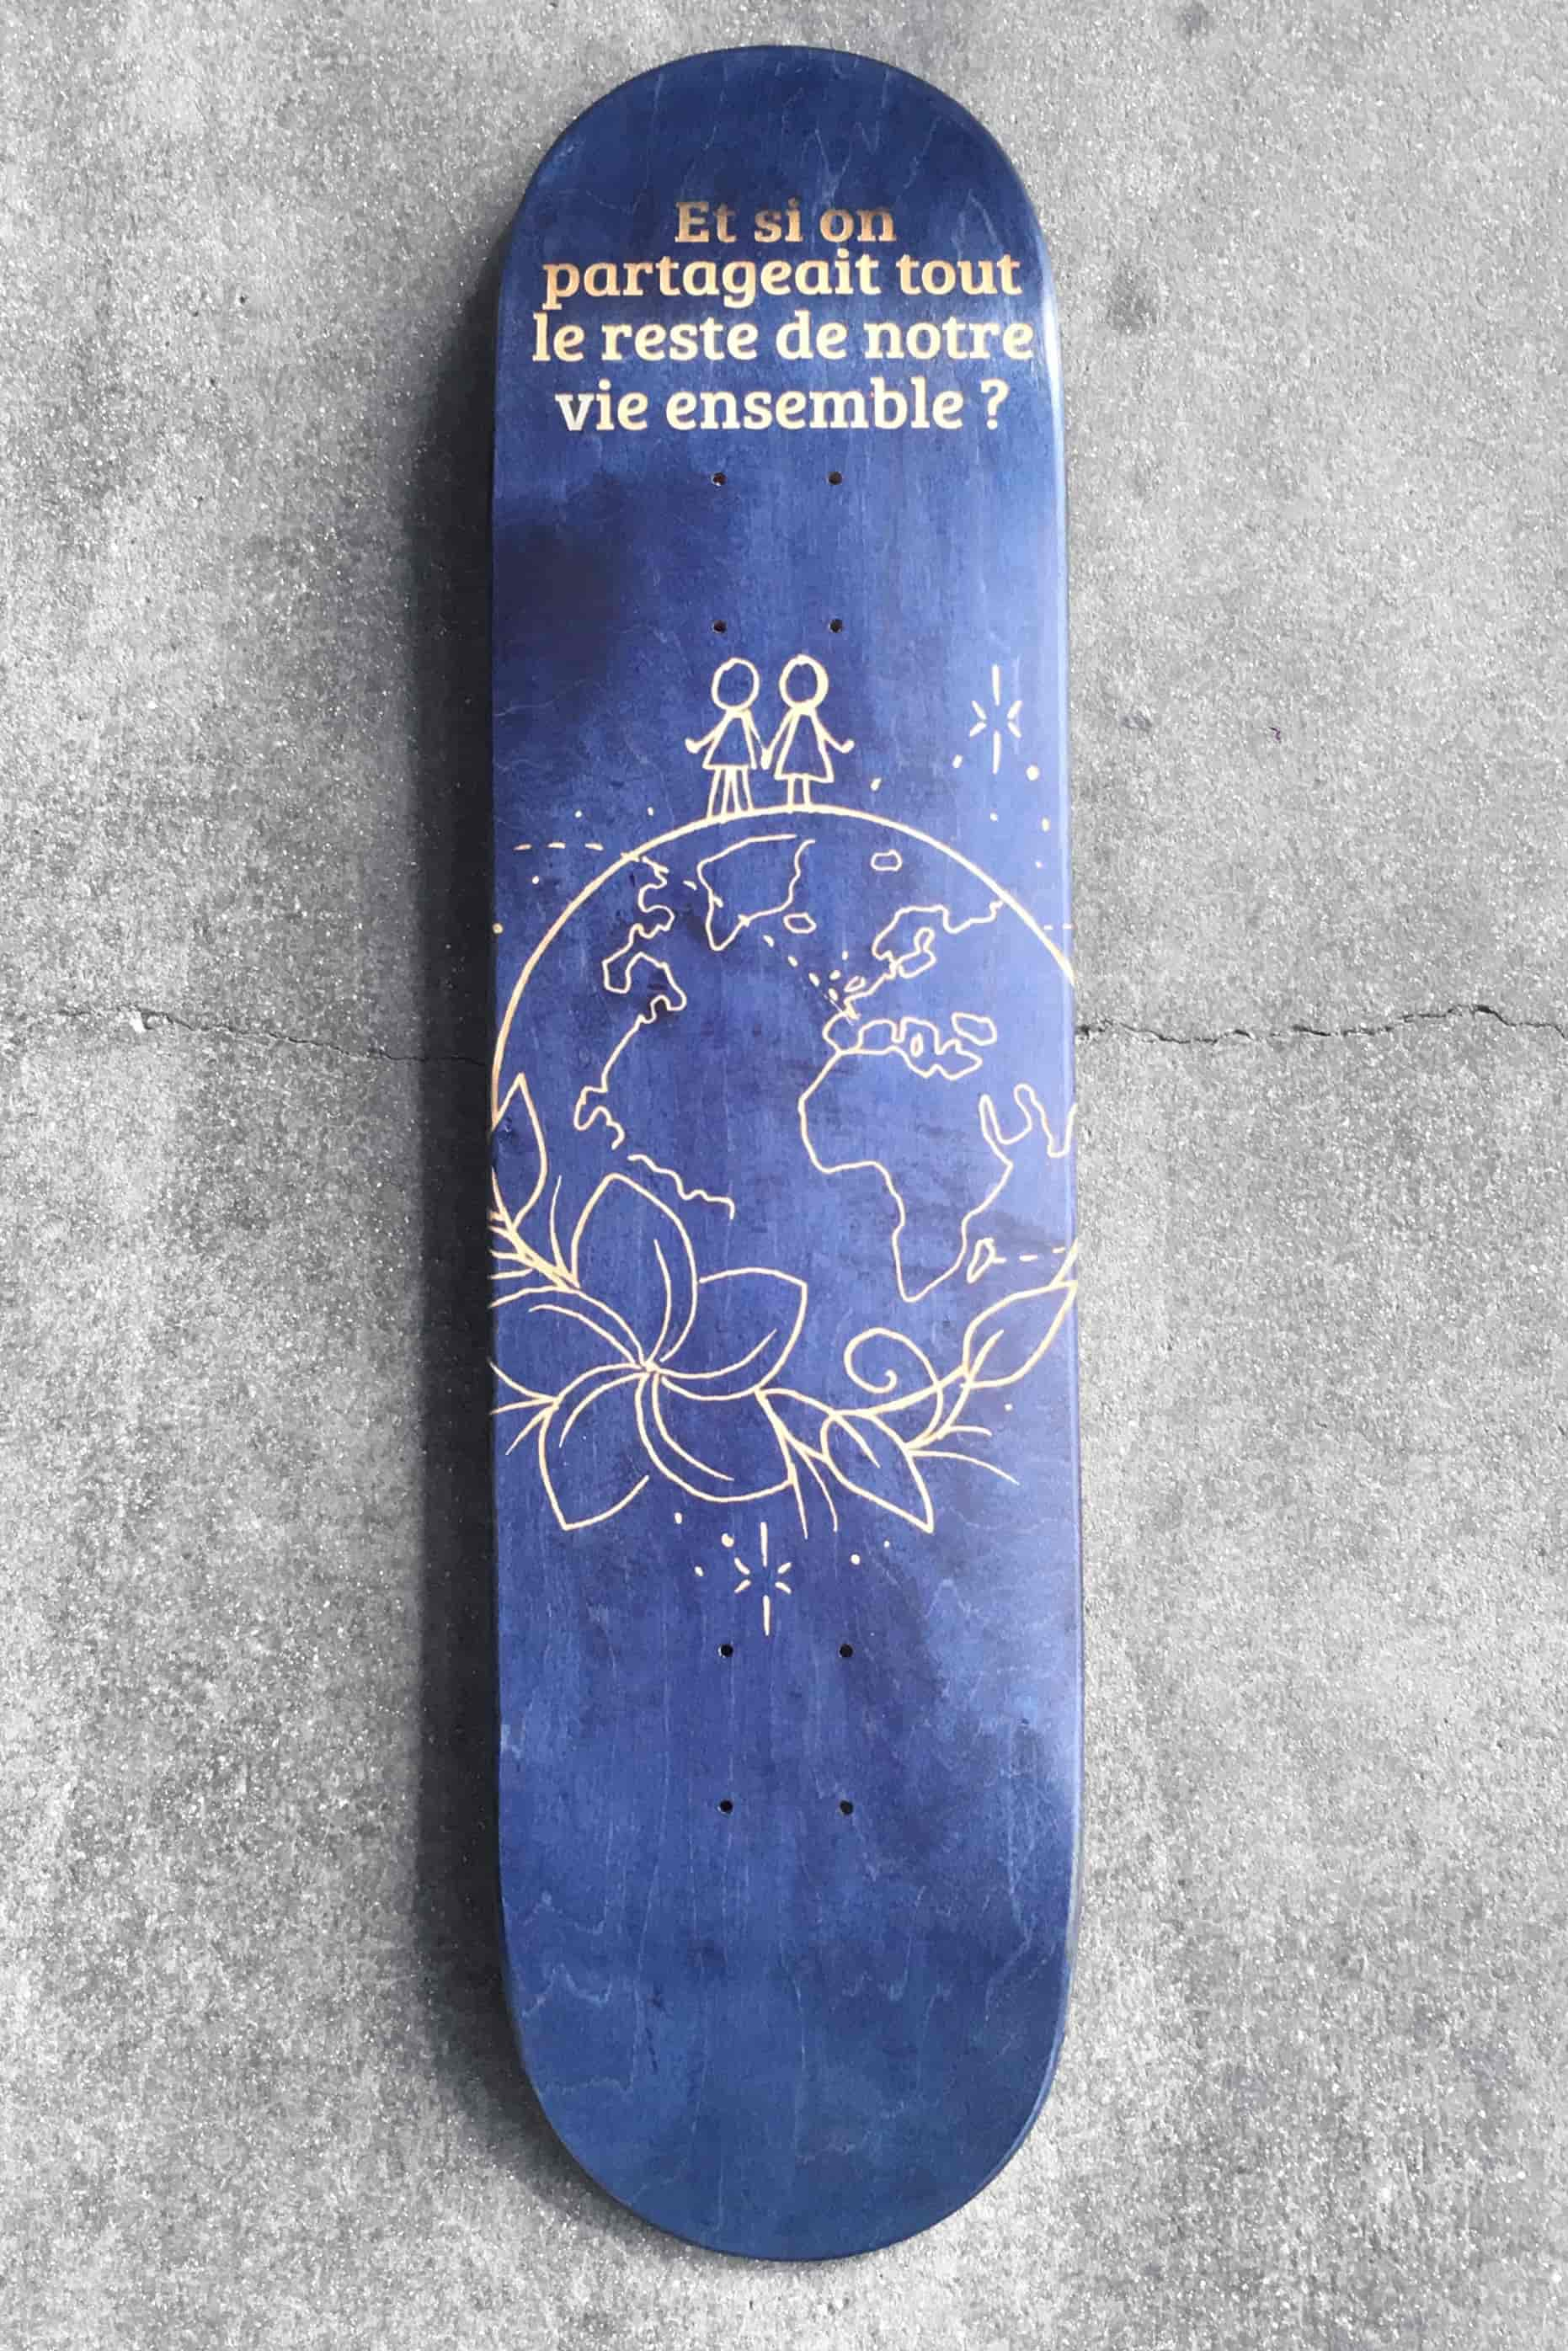 The result of the engraving on the skate deck: the oblique lines haven't been engraved.